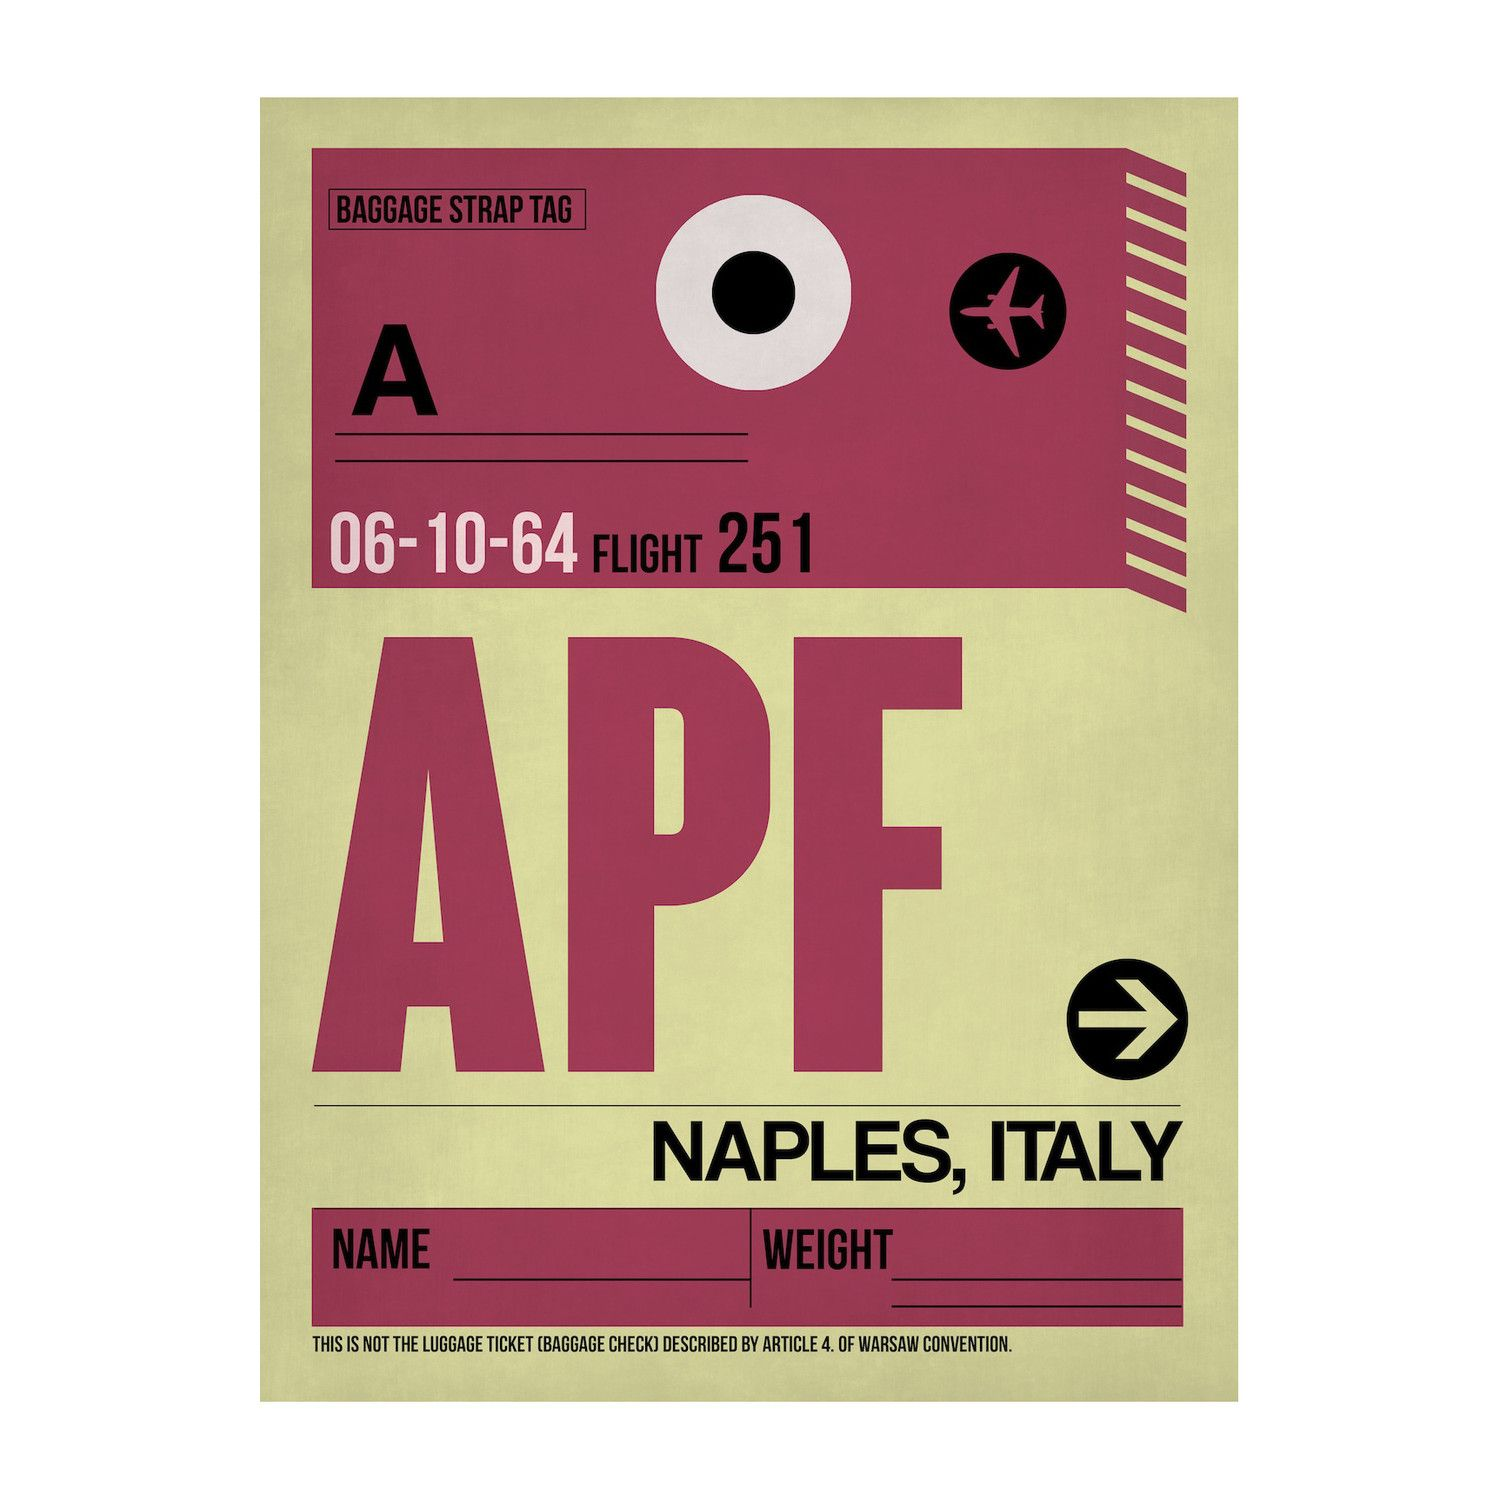 APF Naples Luggage Tag Inspired by luggage tags and air travel ...